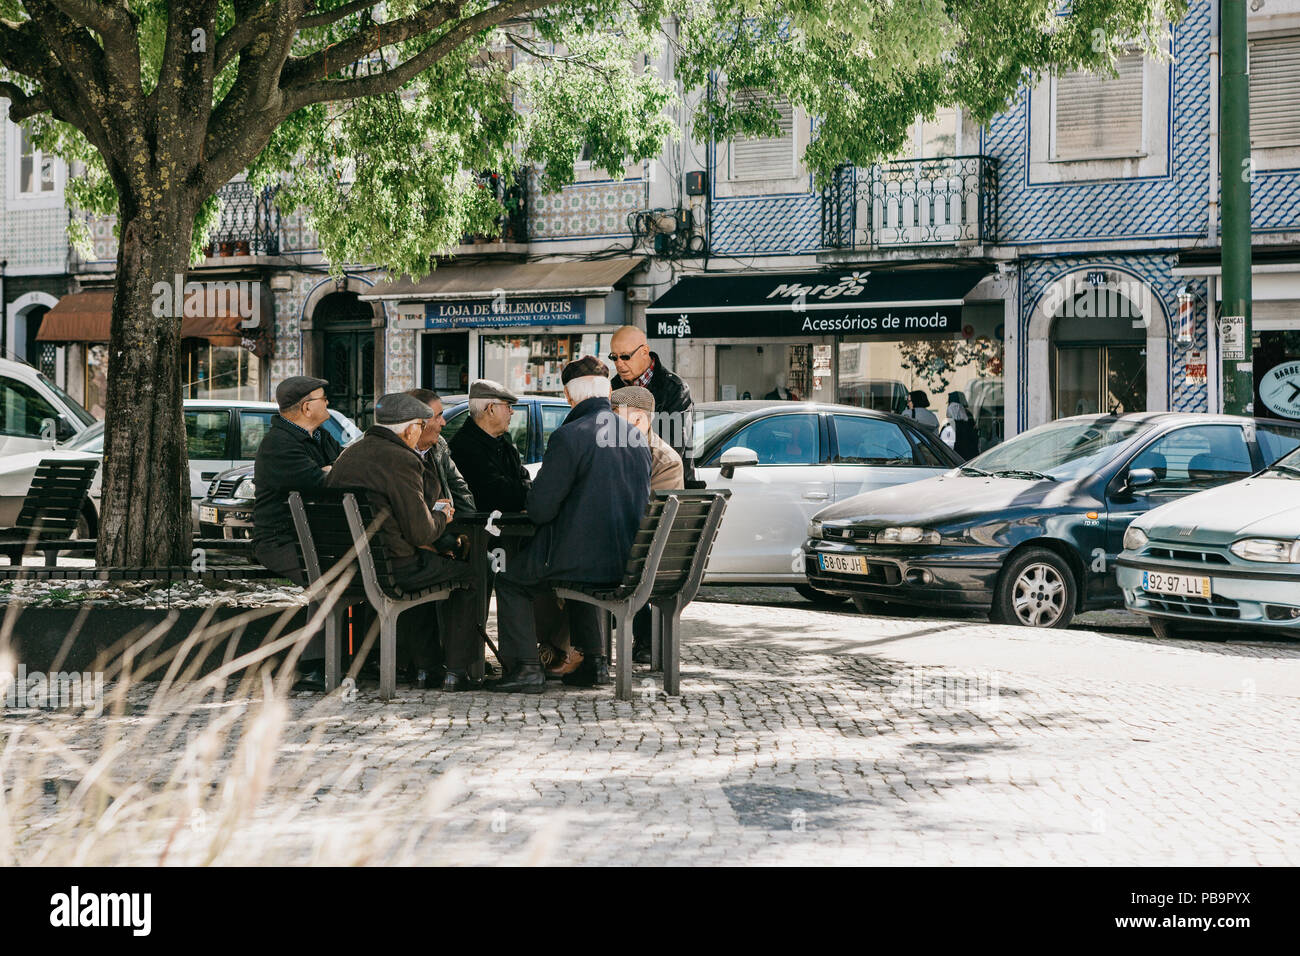 Portugal, Lisbon, 01 May 2018: Elderly Portuguese locals sit on the bench and communicate. - Stock Image